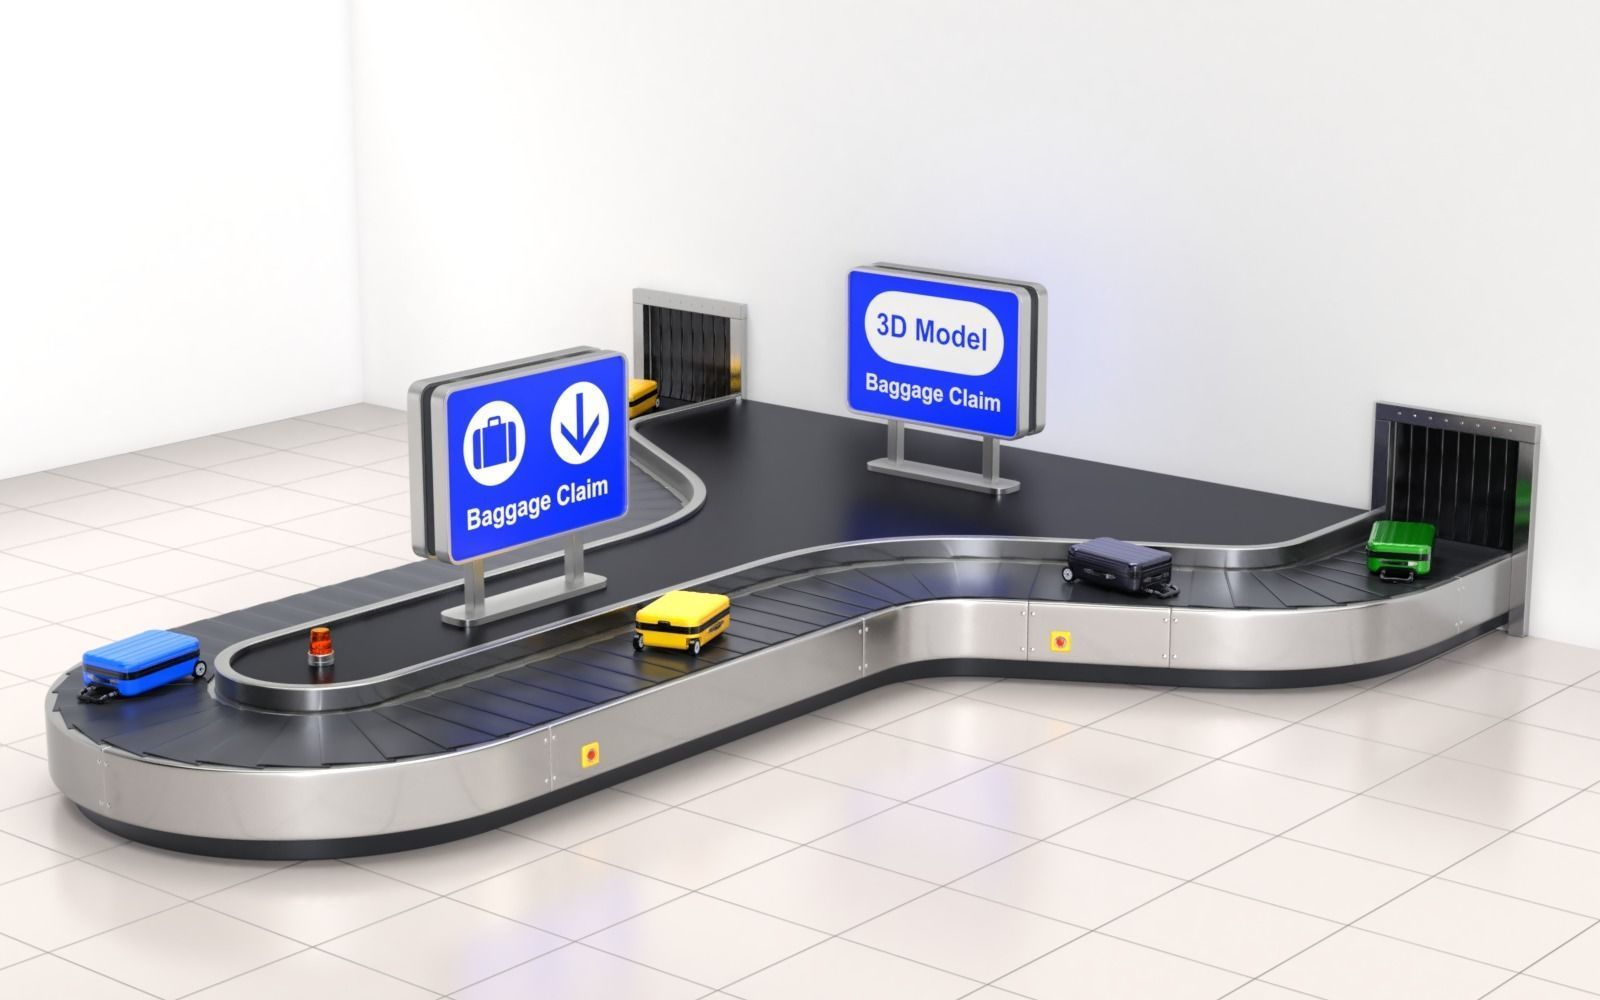 Airport Claim Transporter Y-form with Baggage